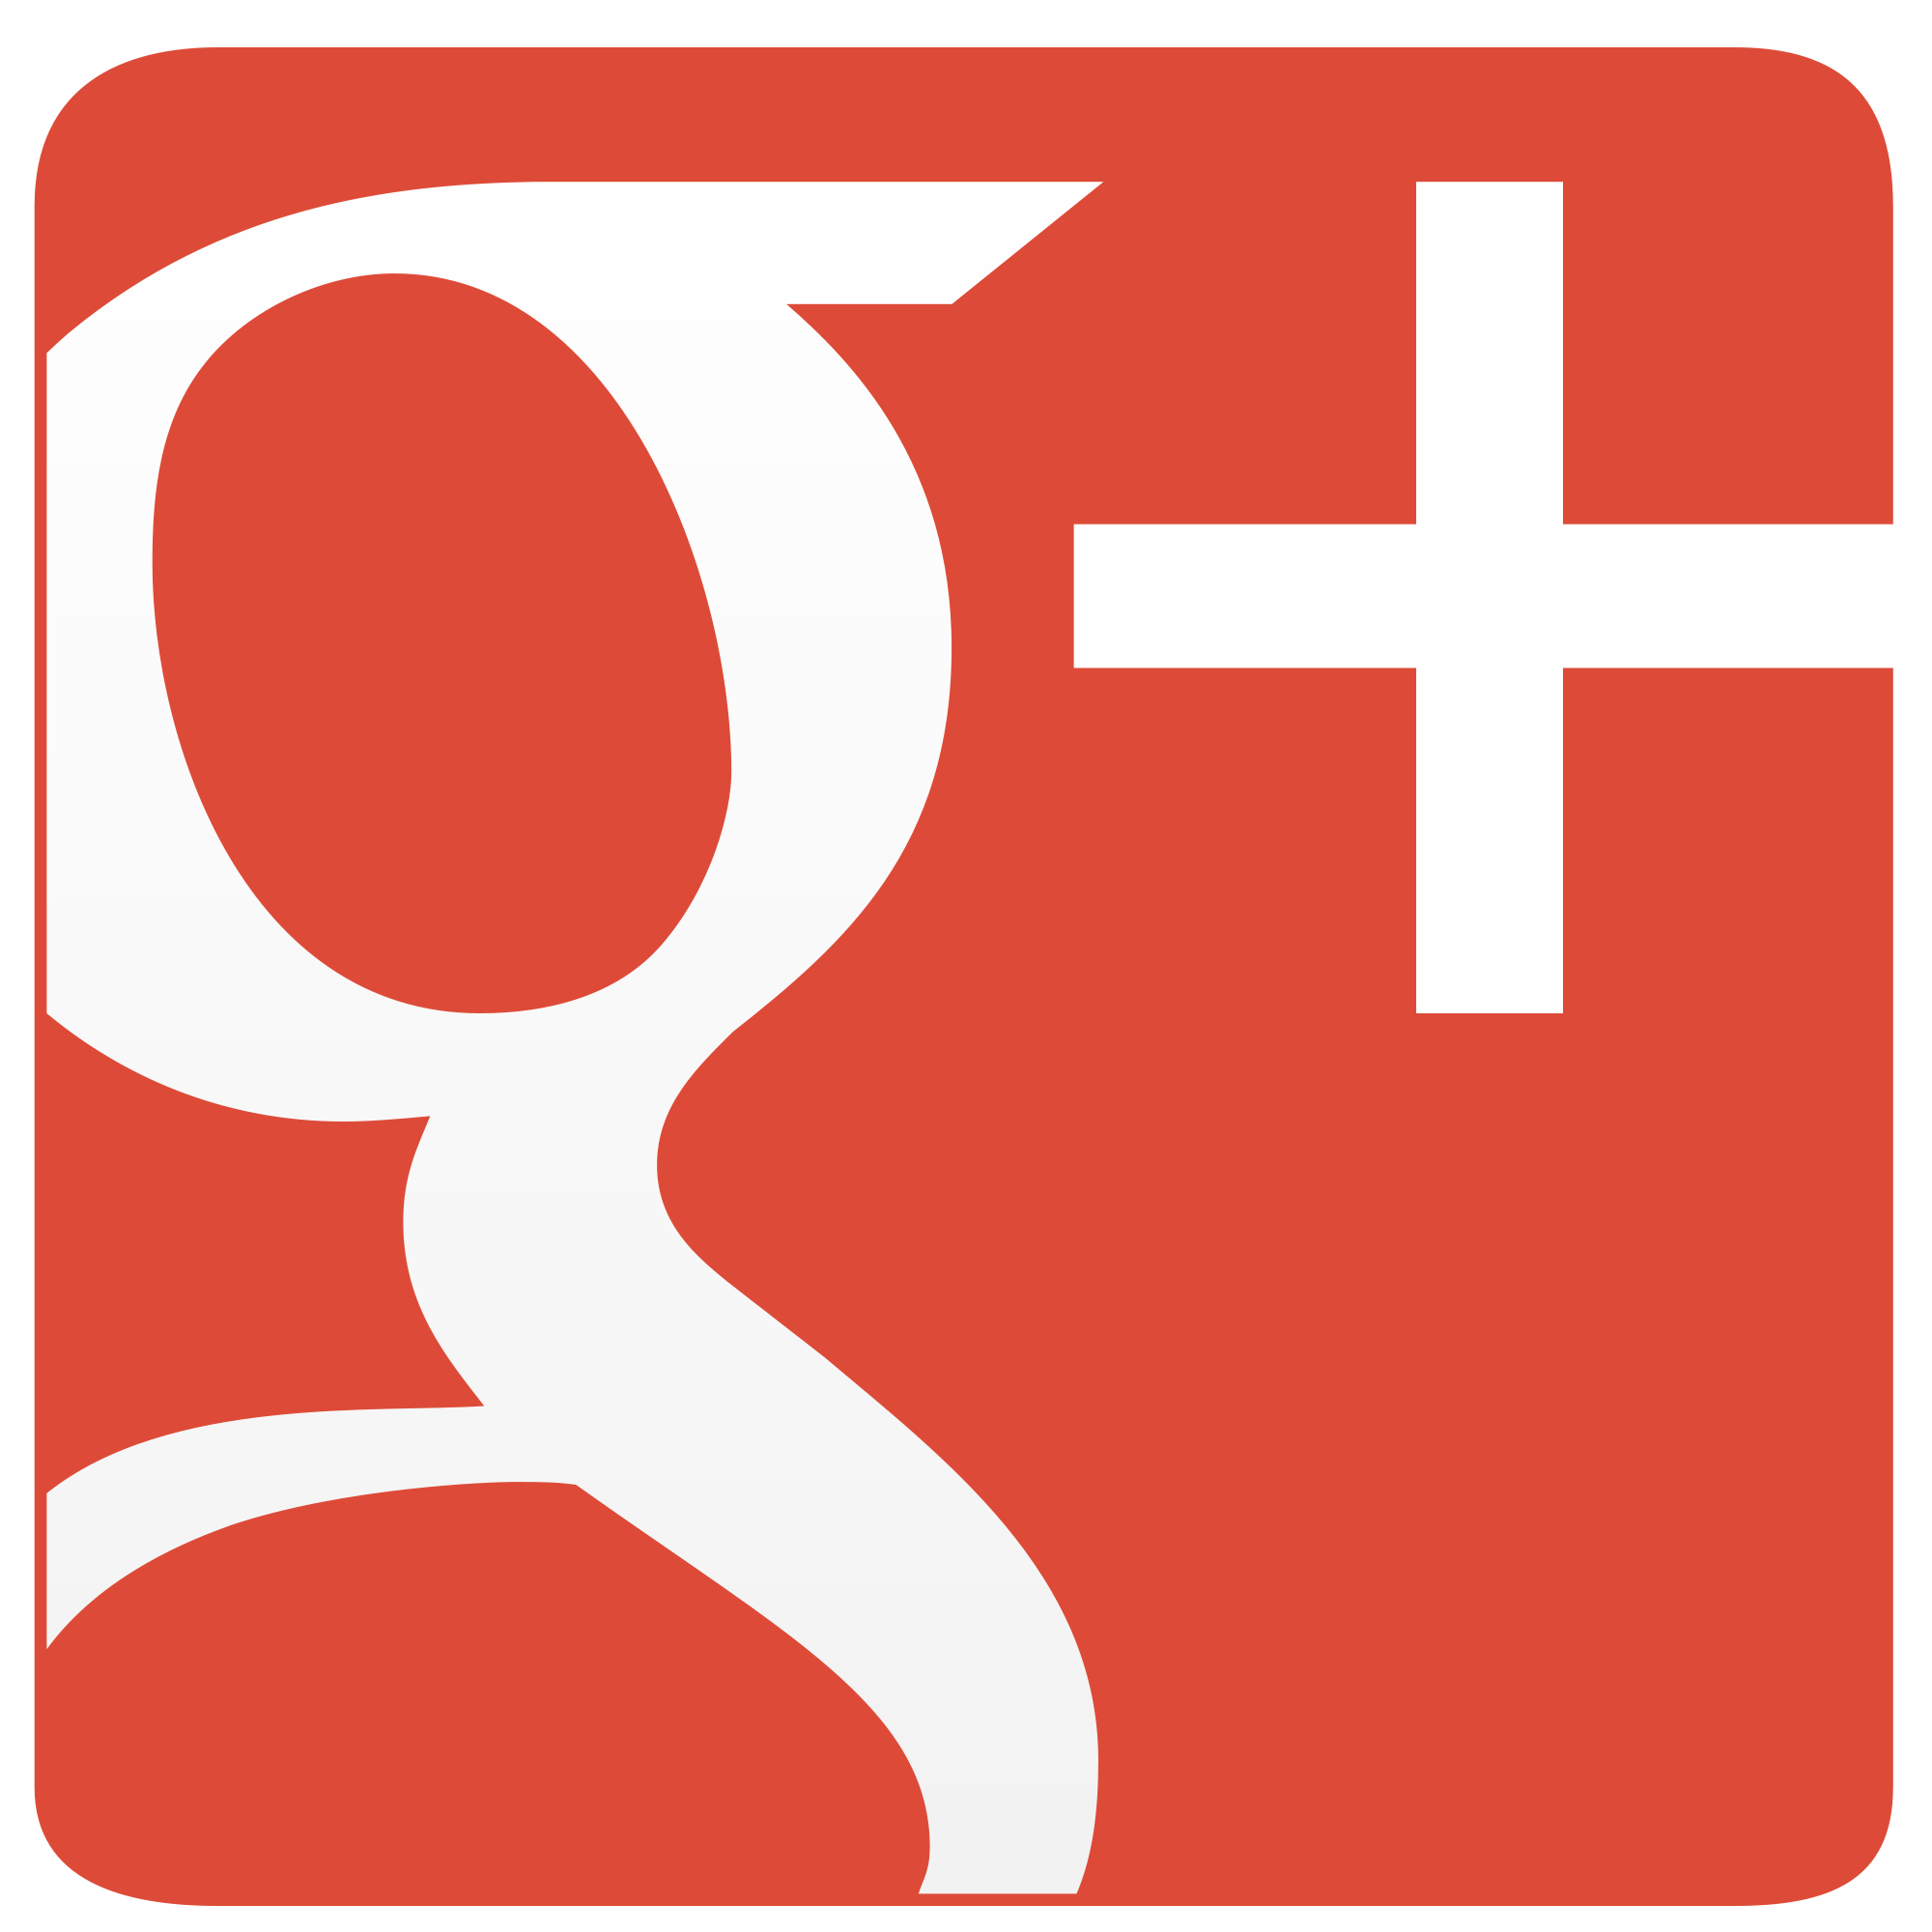 Google_plus_icon.png